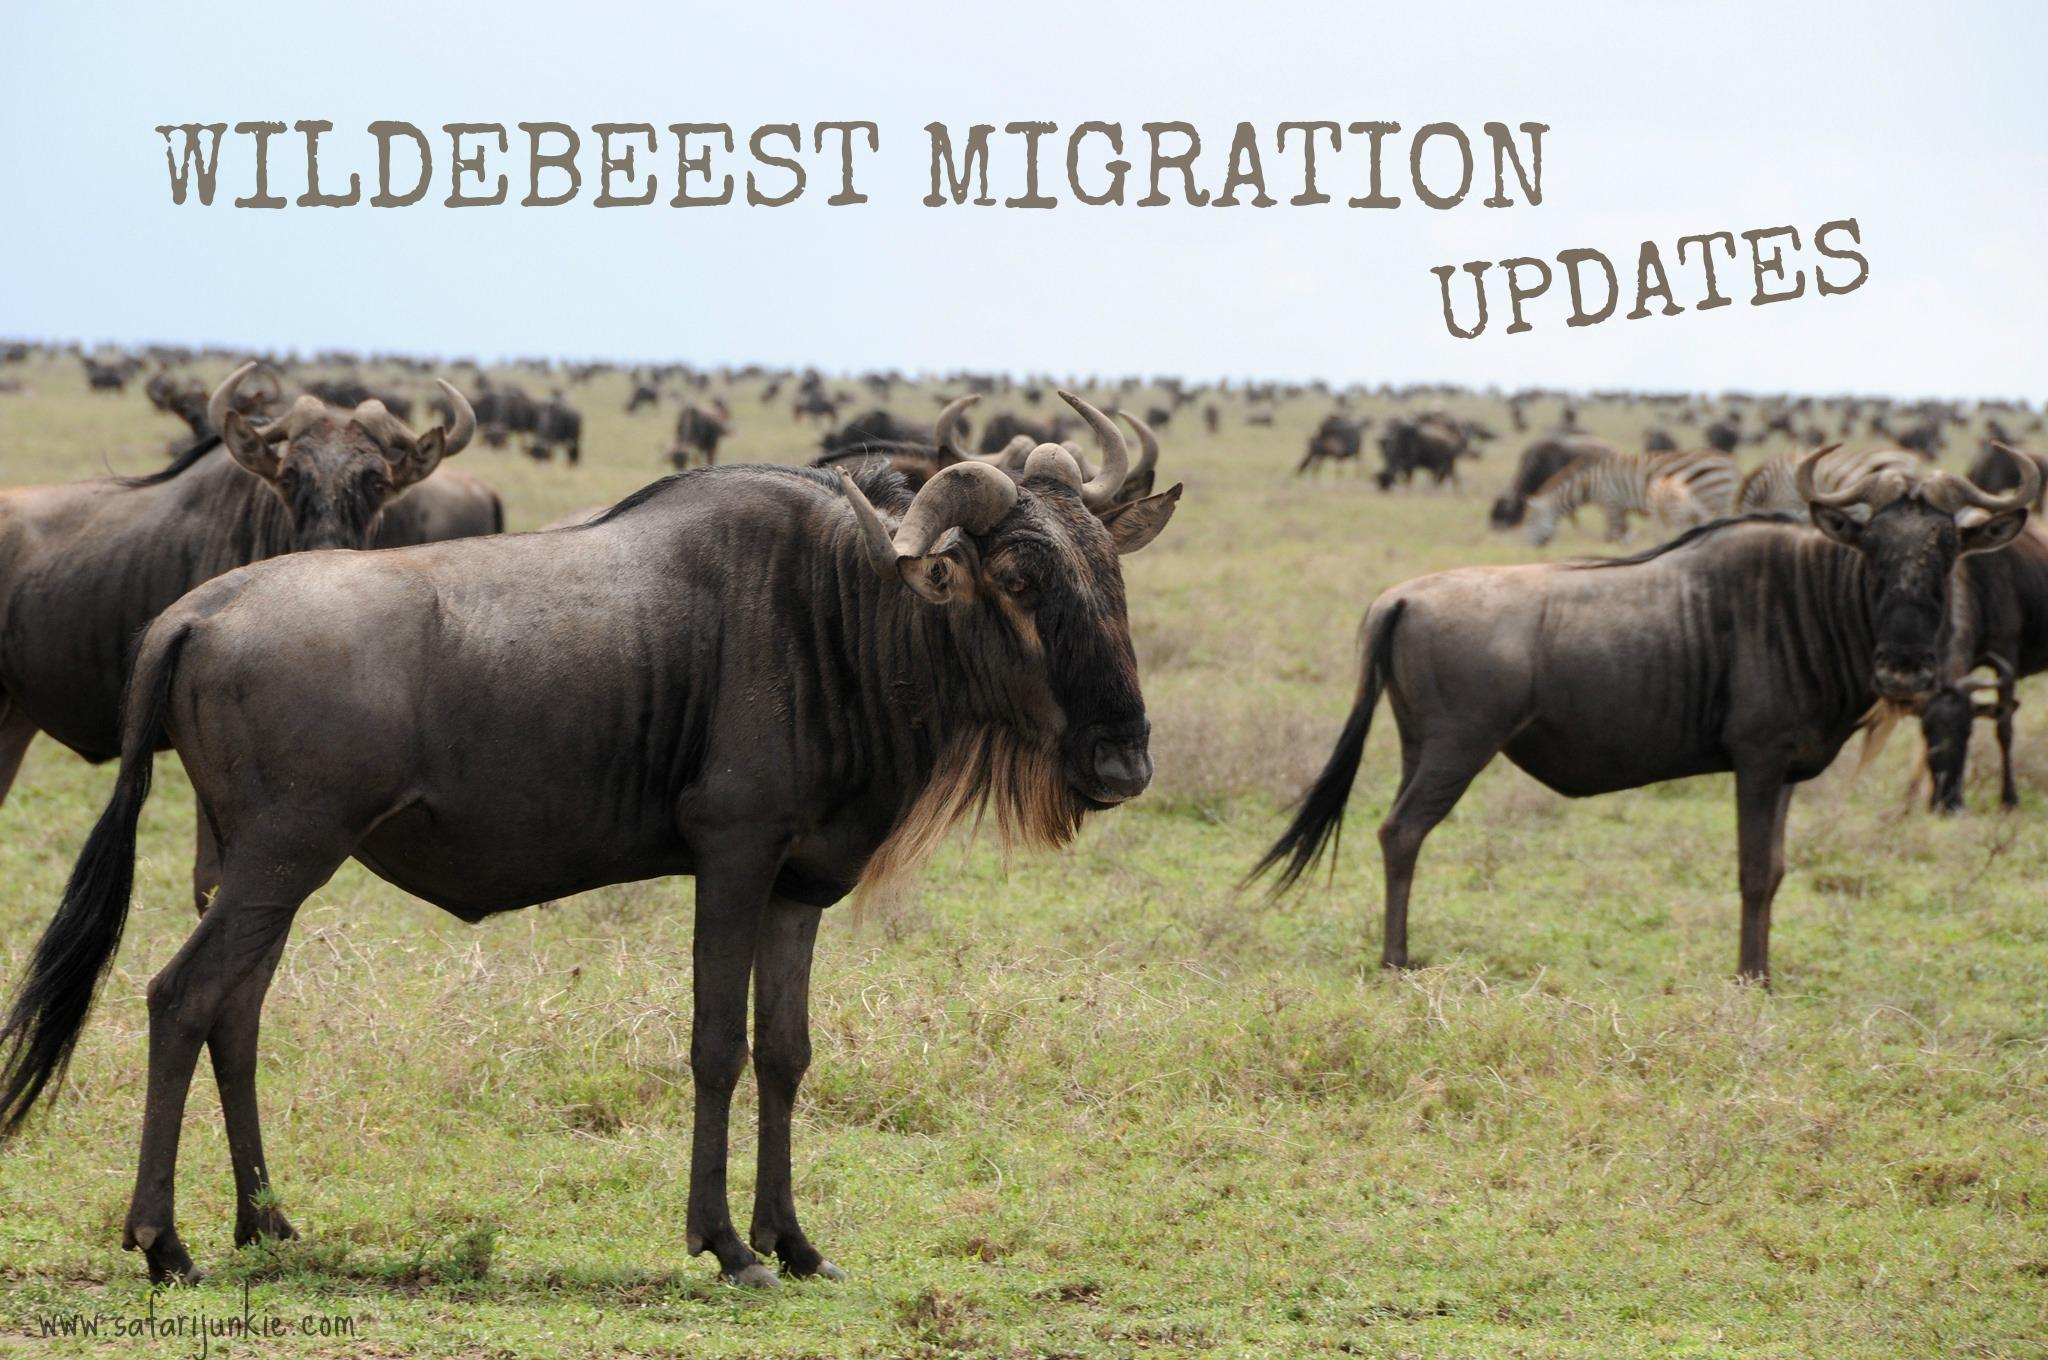 wildebeest migration updates